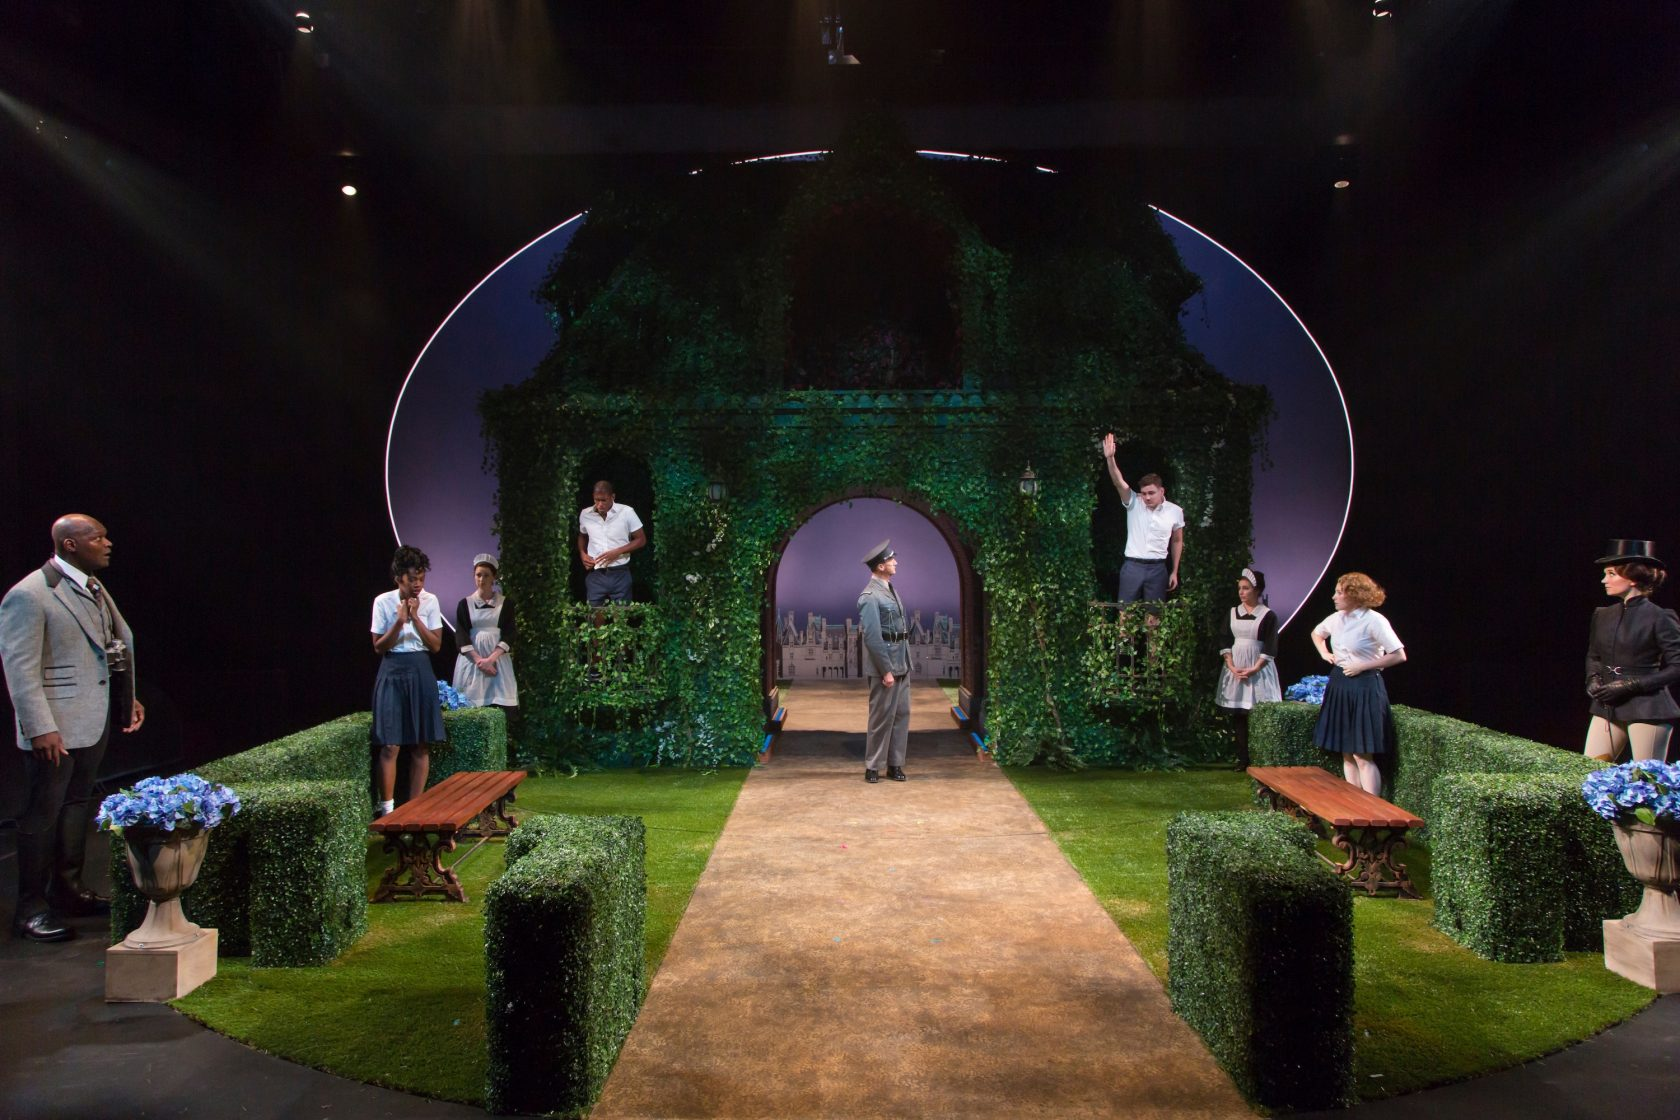 a review of the movie a midsummer nights dream A new production of a midsummer night's dream at shakespeare's globe is touching and joyously inventive, says charles spencer.